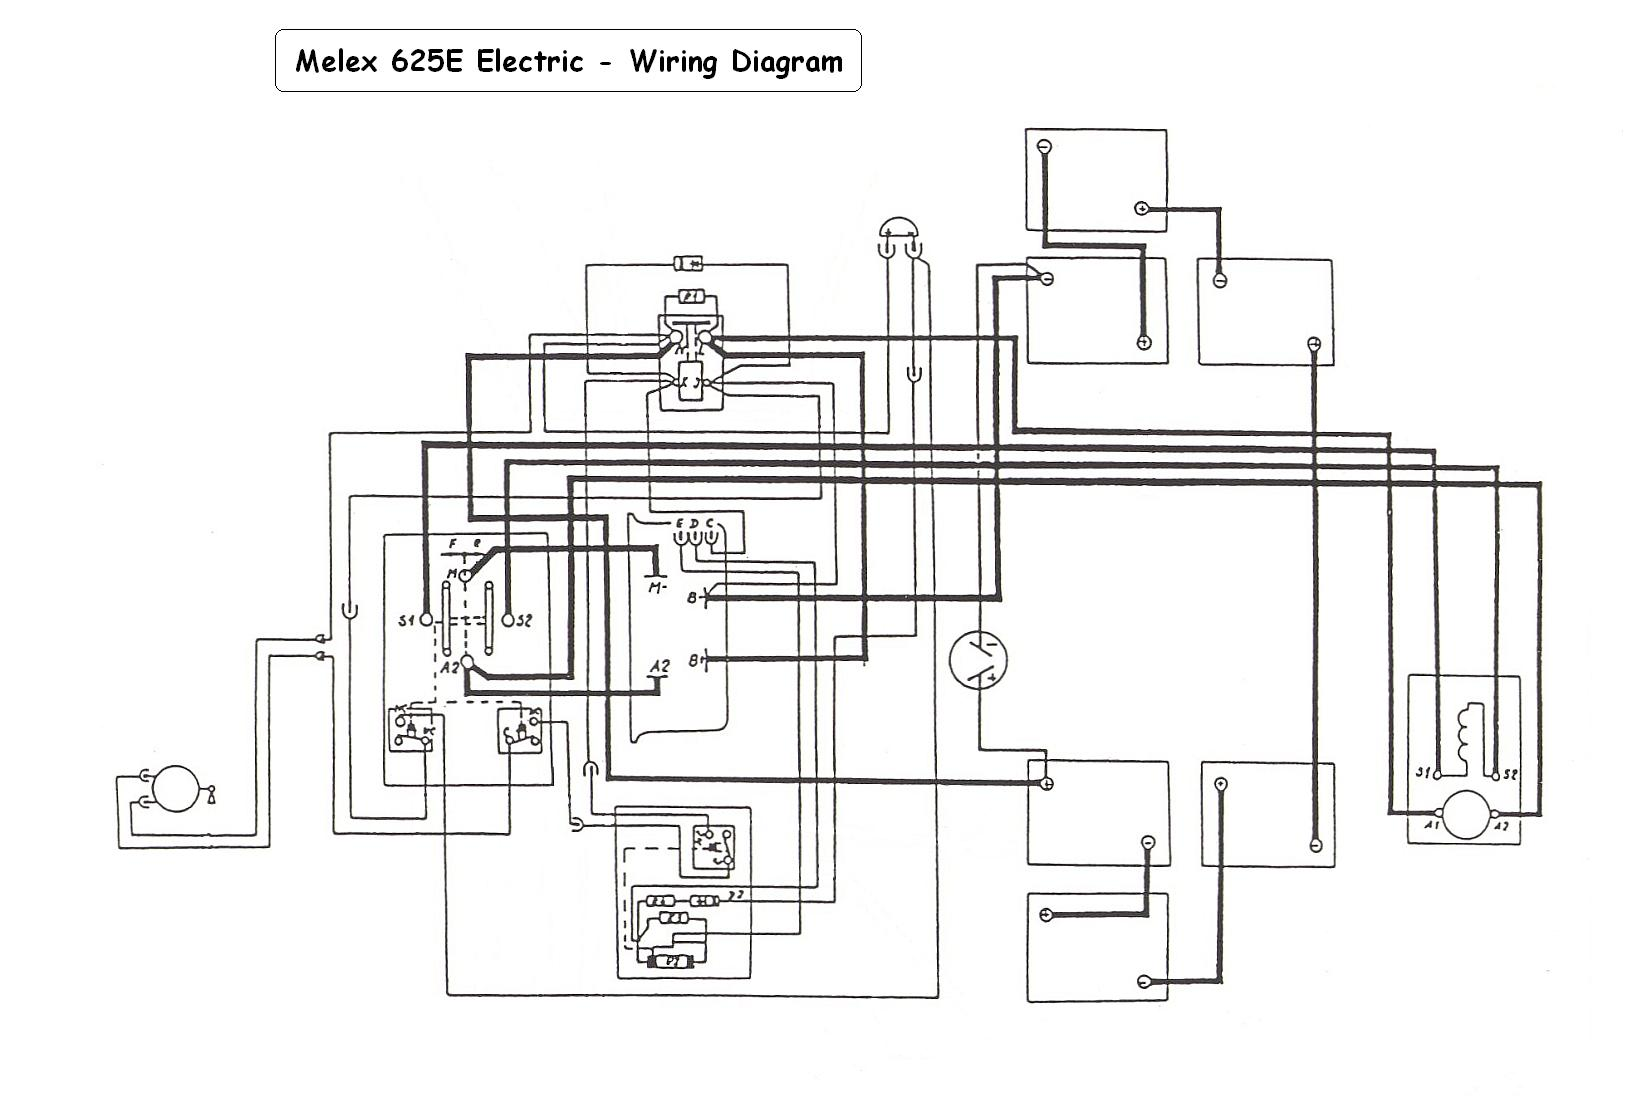 3 way switch wiring examples with Scania Wiring Diagram on Scania Wiring Diagram further Ceiling Fan 3 Way Switch Wiring Diagram moreover Indexdiagrams also C Wiring Diagram also Double Pole Single Throw Switch DPST.